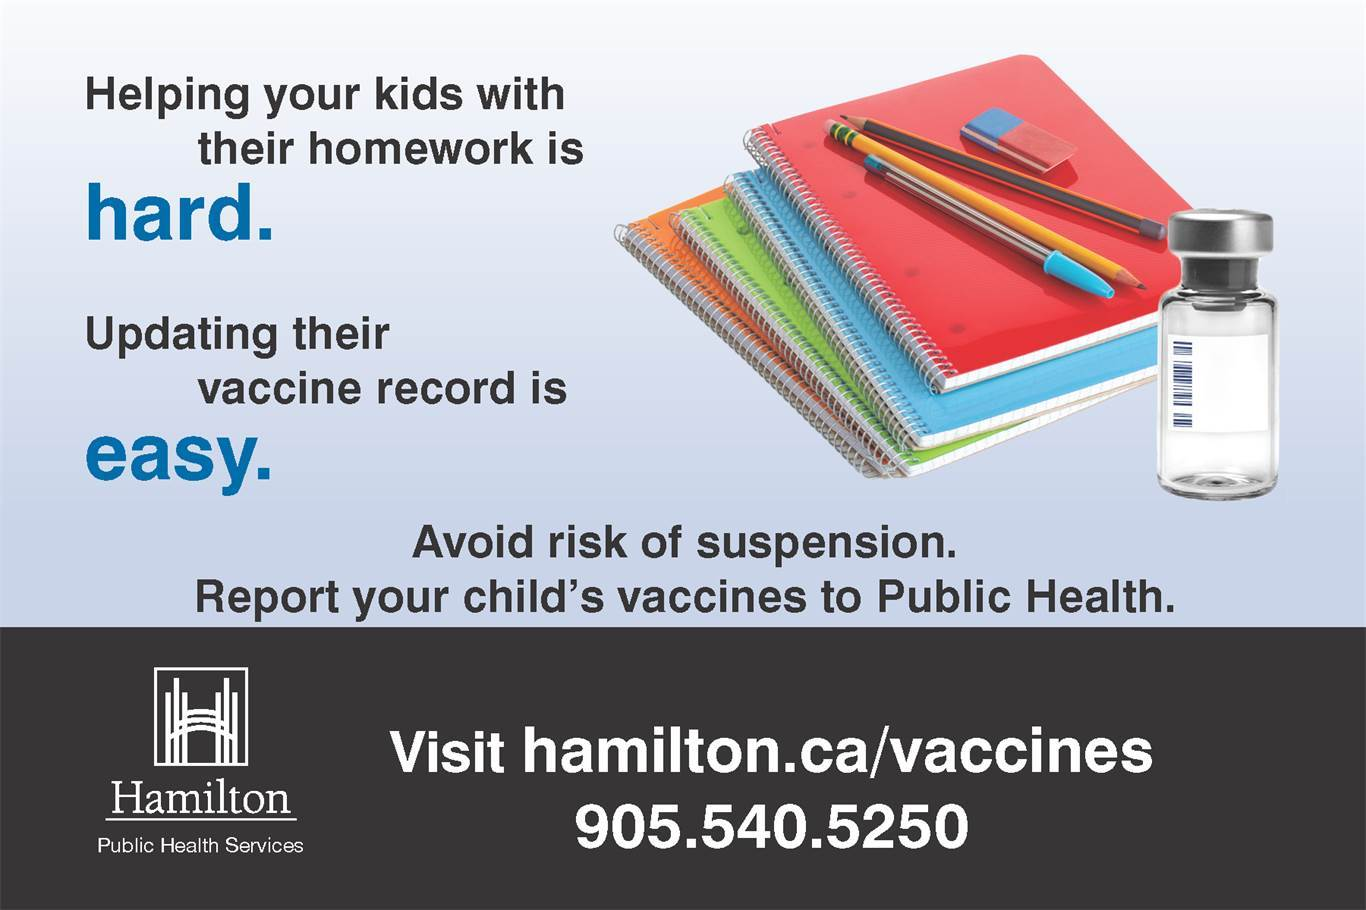 Avoid risk of suspension. Report your child's vaccines to Public Health.